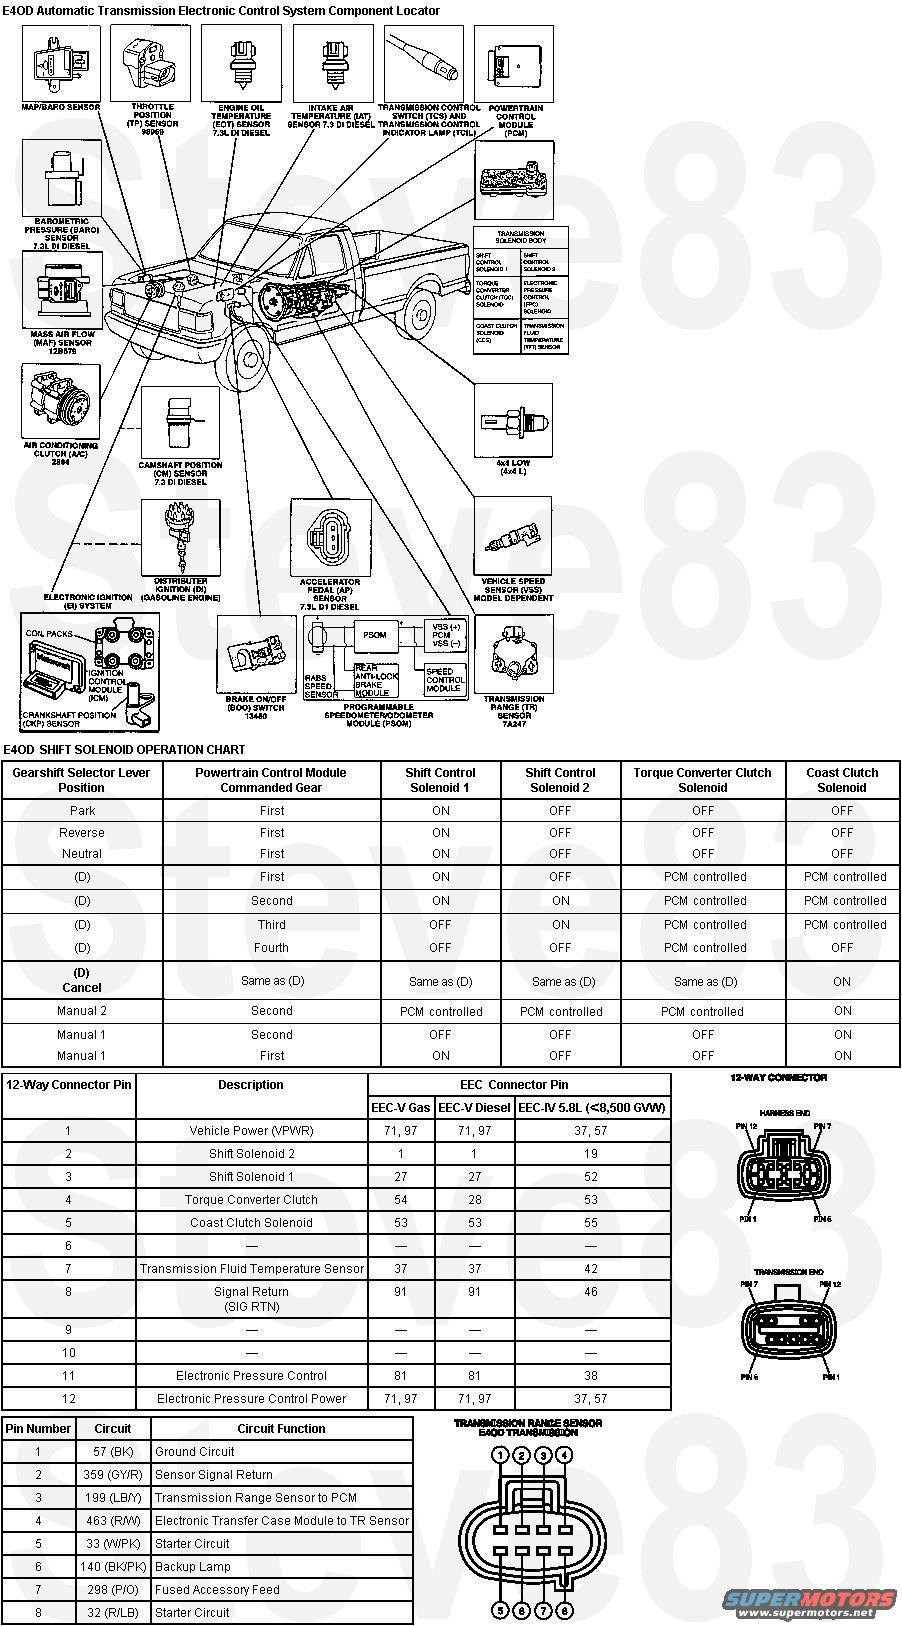 1993 ford f150 wiring diagram 240sx diagrams 1983 bronco picture | supermotors.net